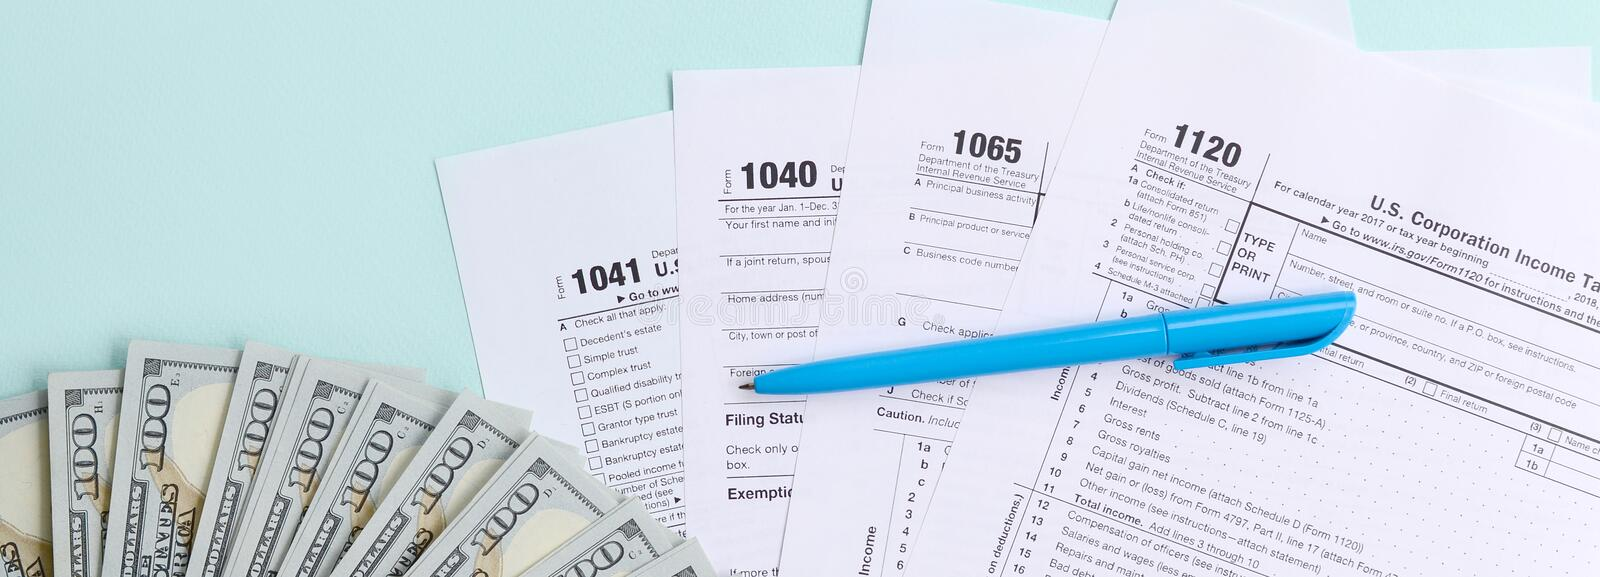 Tax forms lies near hundred dollar bills and blue pen on a light blue background. Income tax return royalty free stock photography